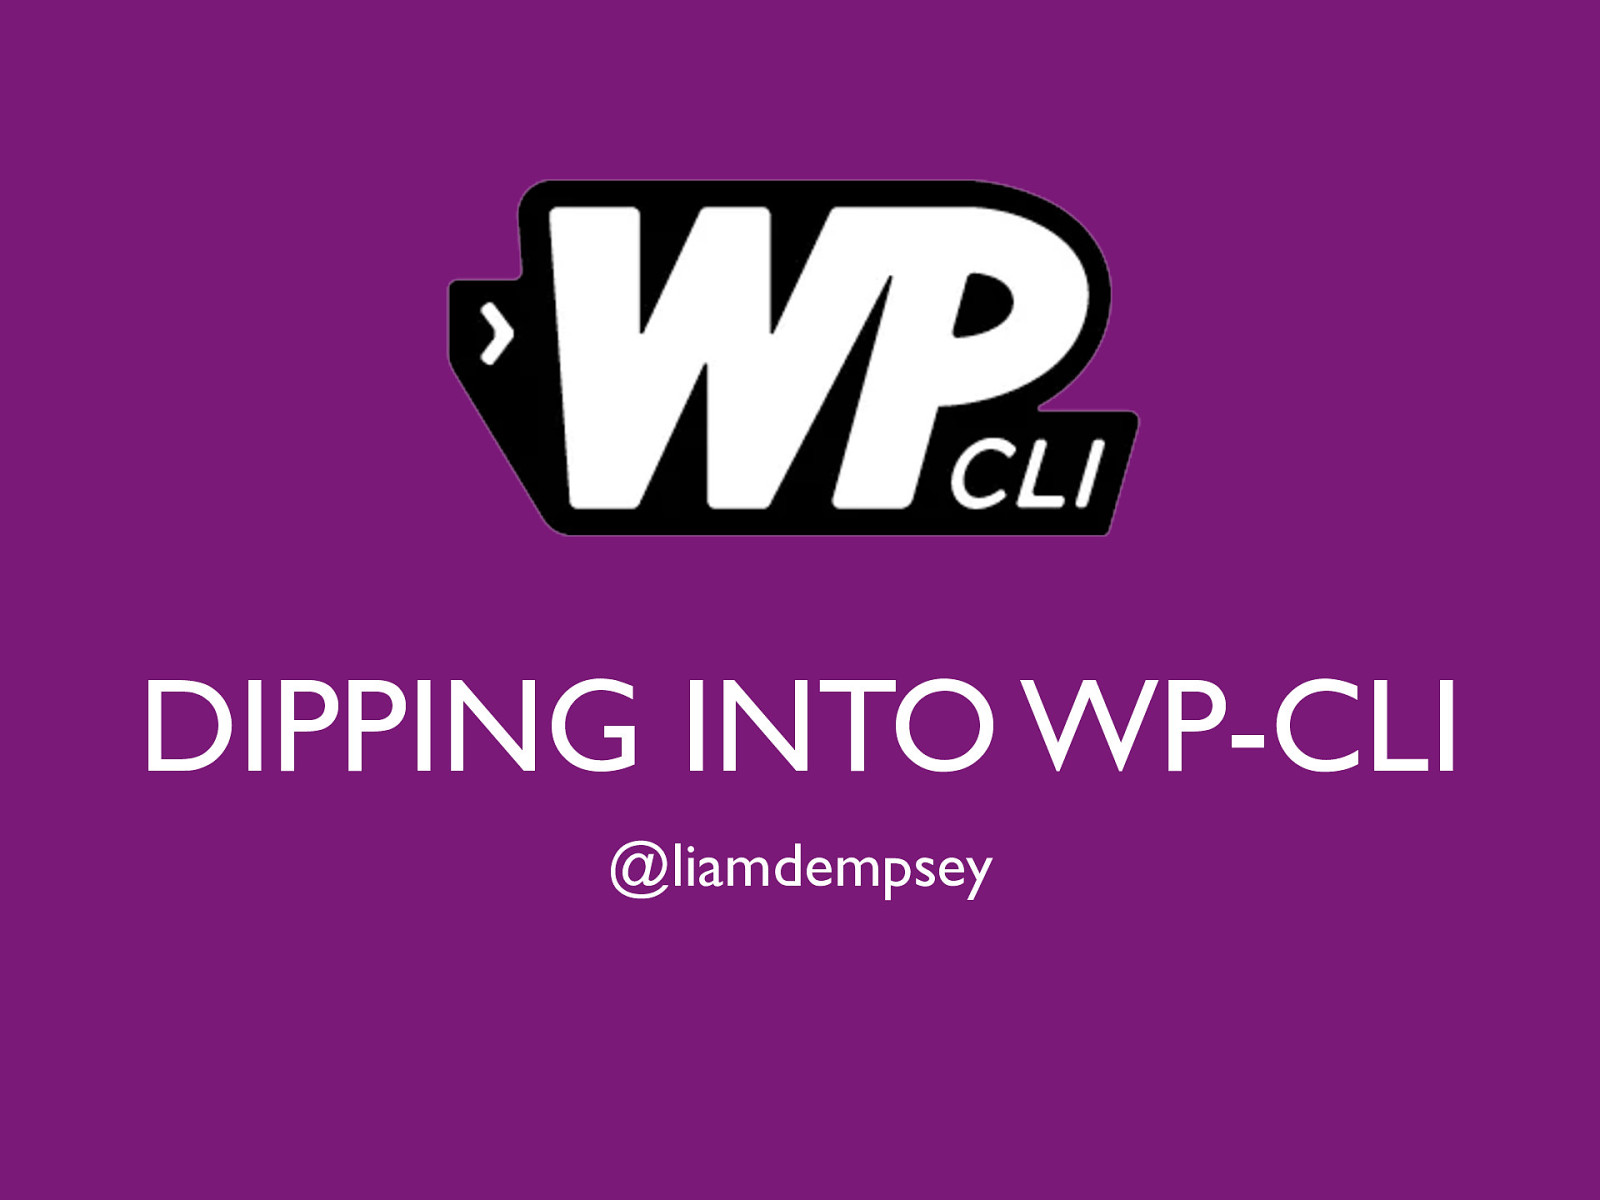 Dipping into wp-cli